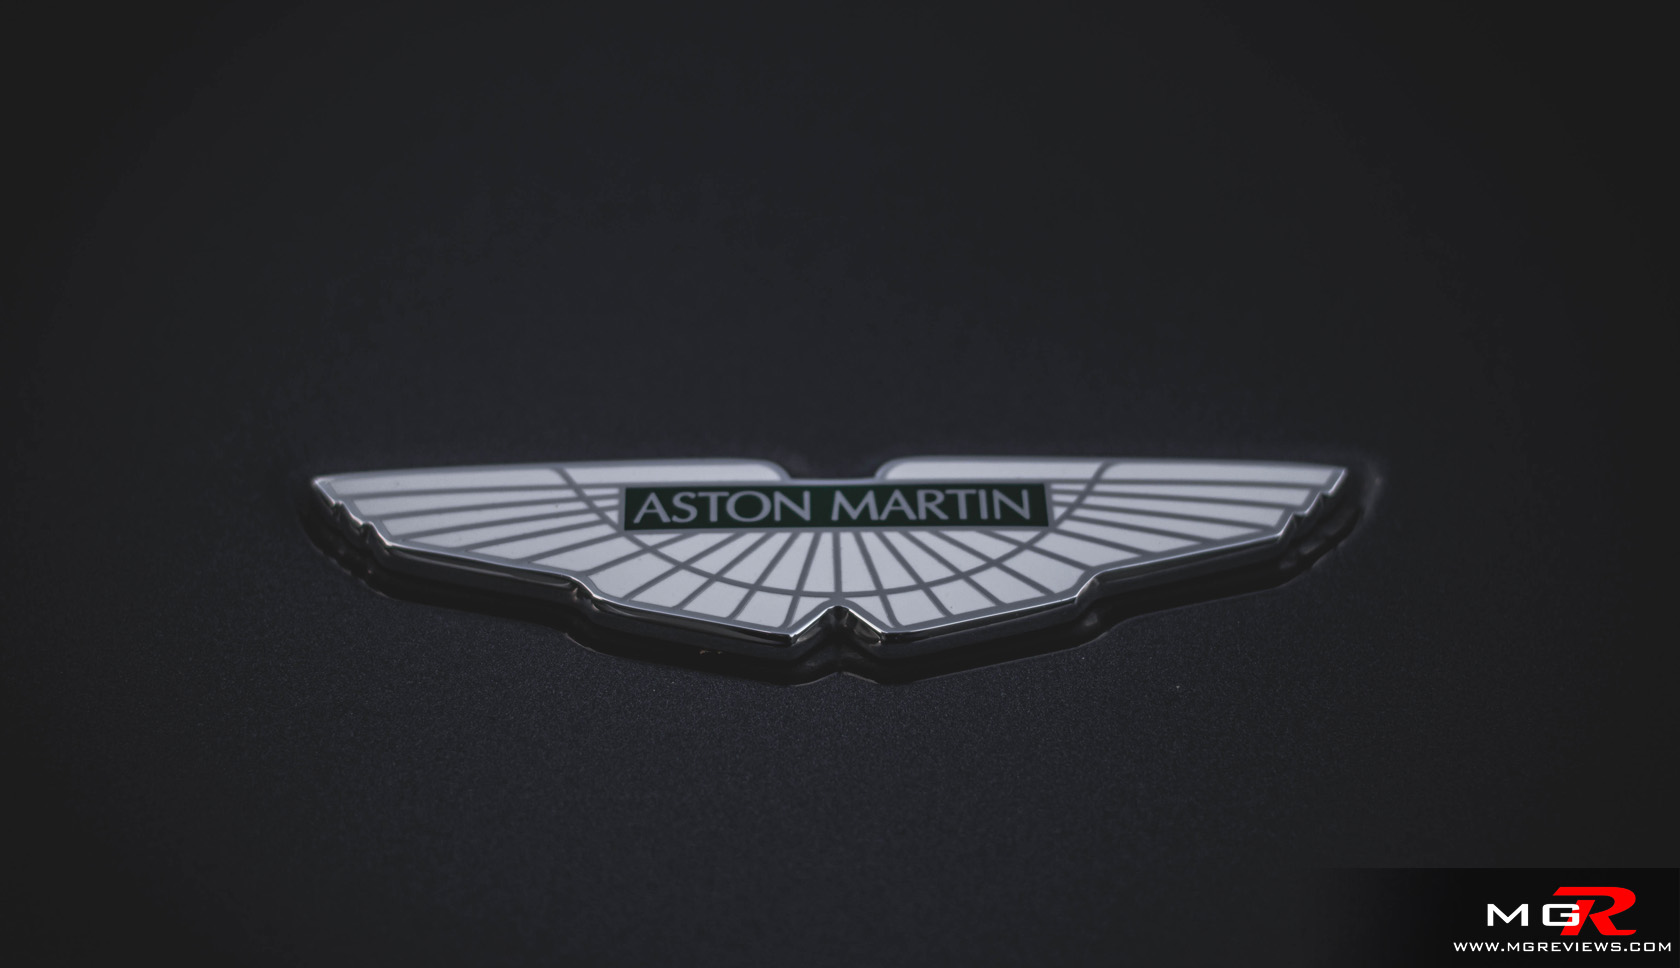 Review: 2007 Aston Martin V8 Vantage – M.G.Reviews on black aston martin logo, aston martin gucci logo, aston martin car logo, aston martin dbs logo,